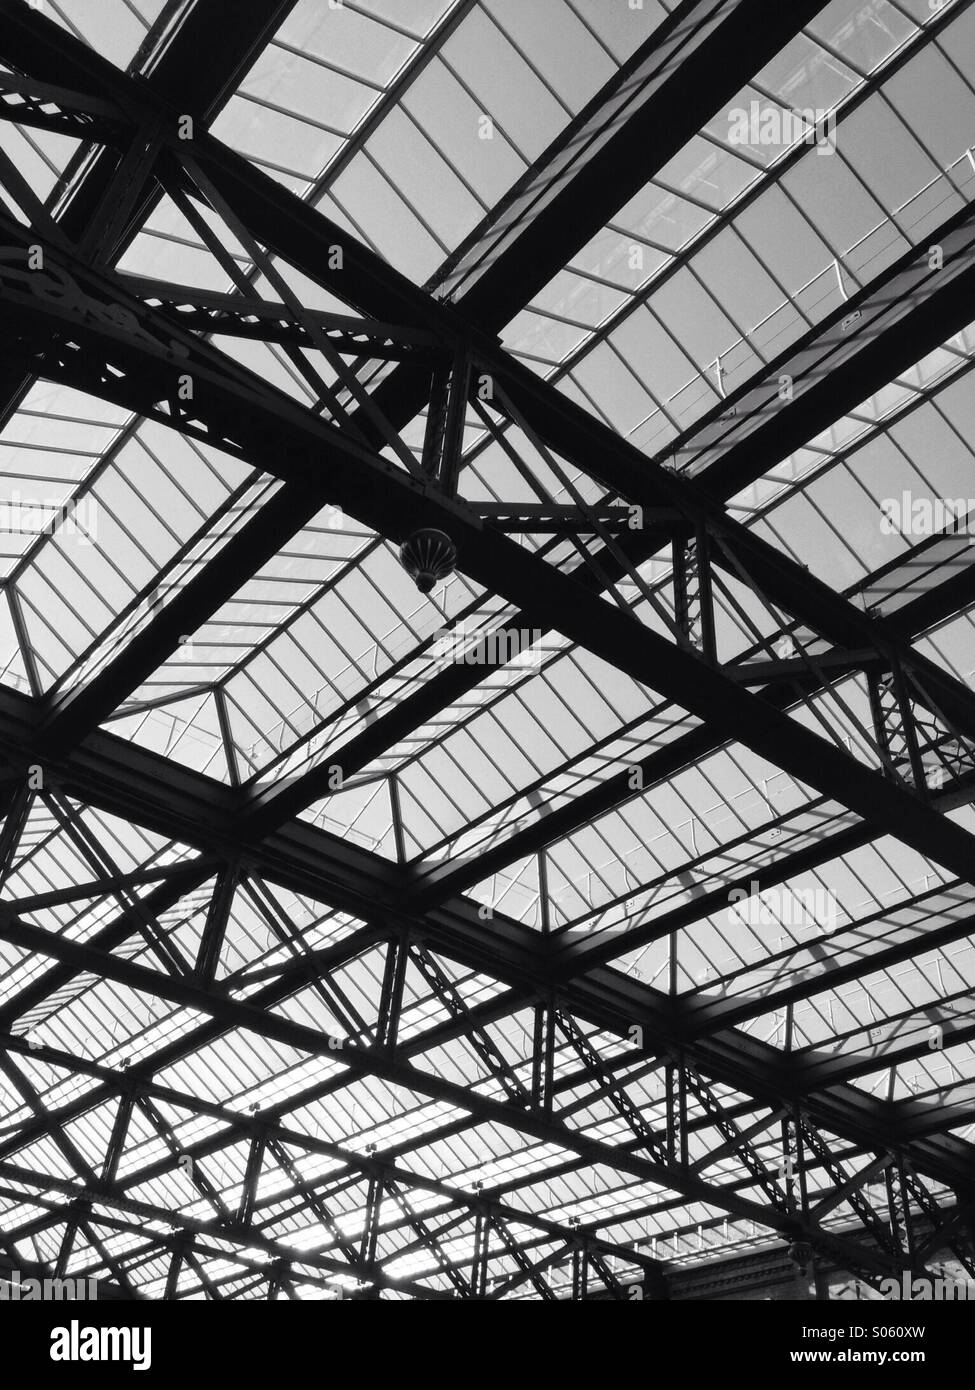 Roof Shapes Stock Photos Amp Roof Shapes Stock Images Alamy